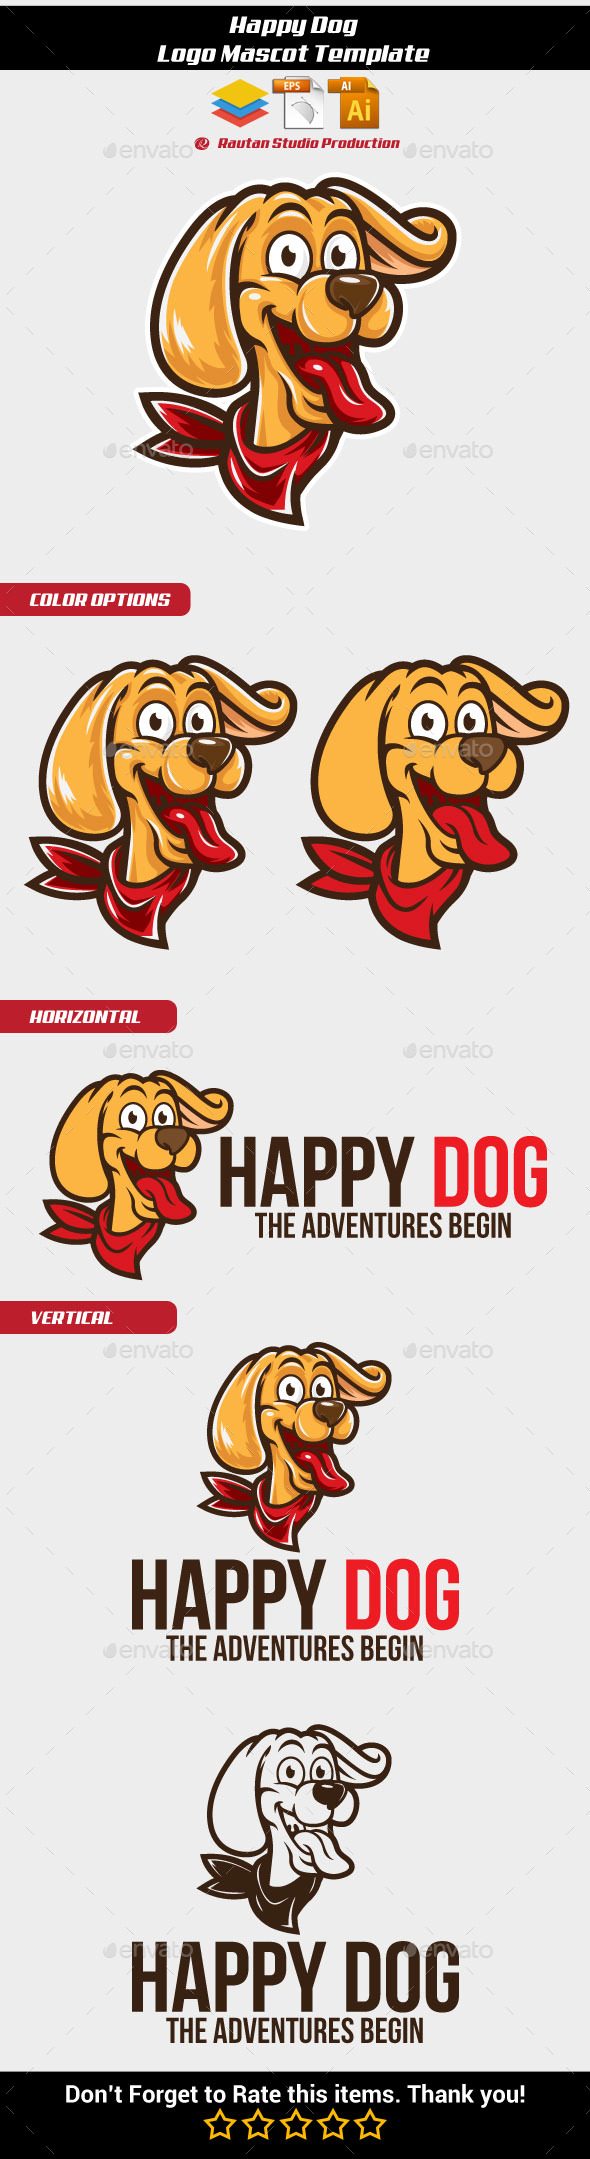 Happy Dog Logo Mascot